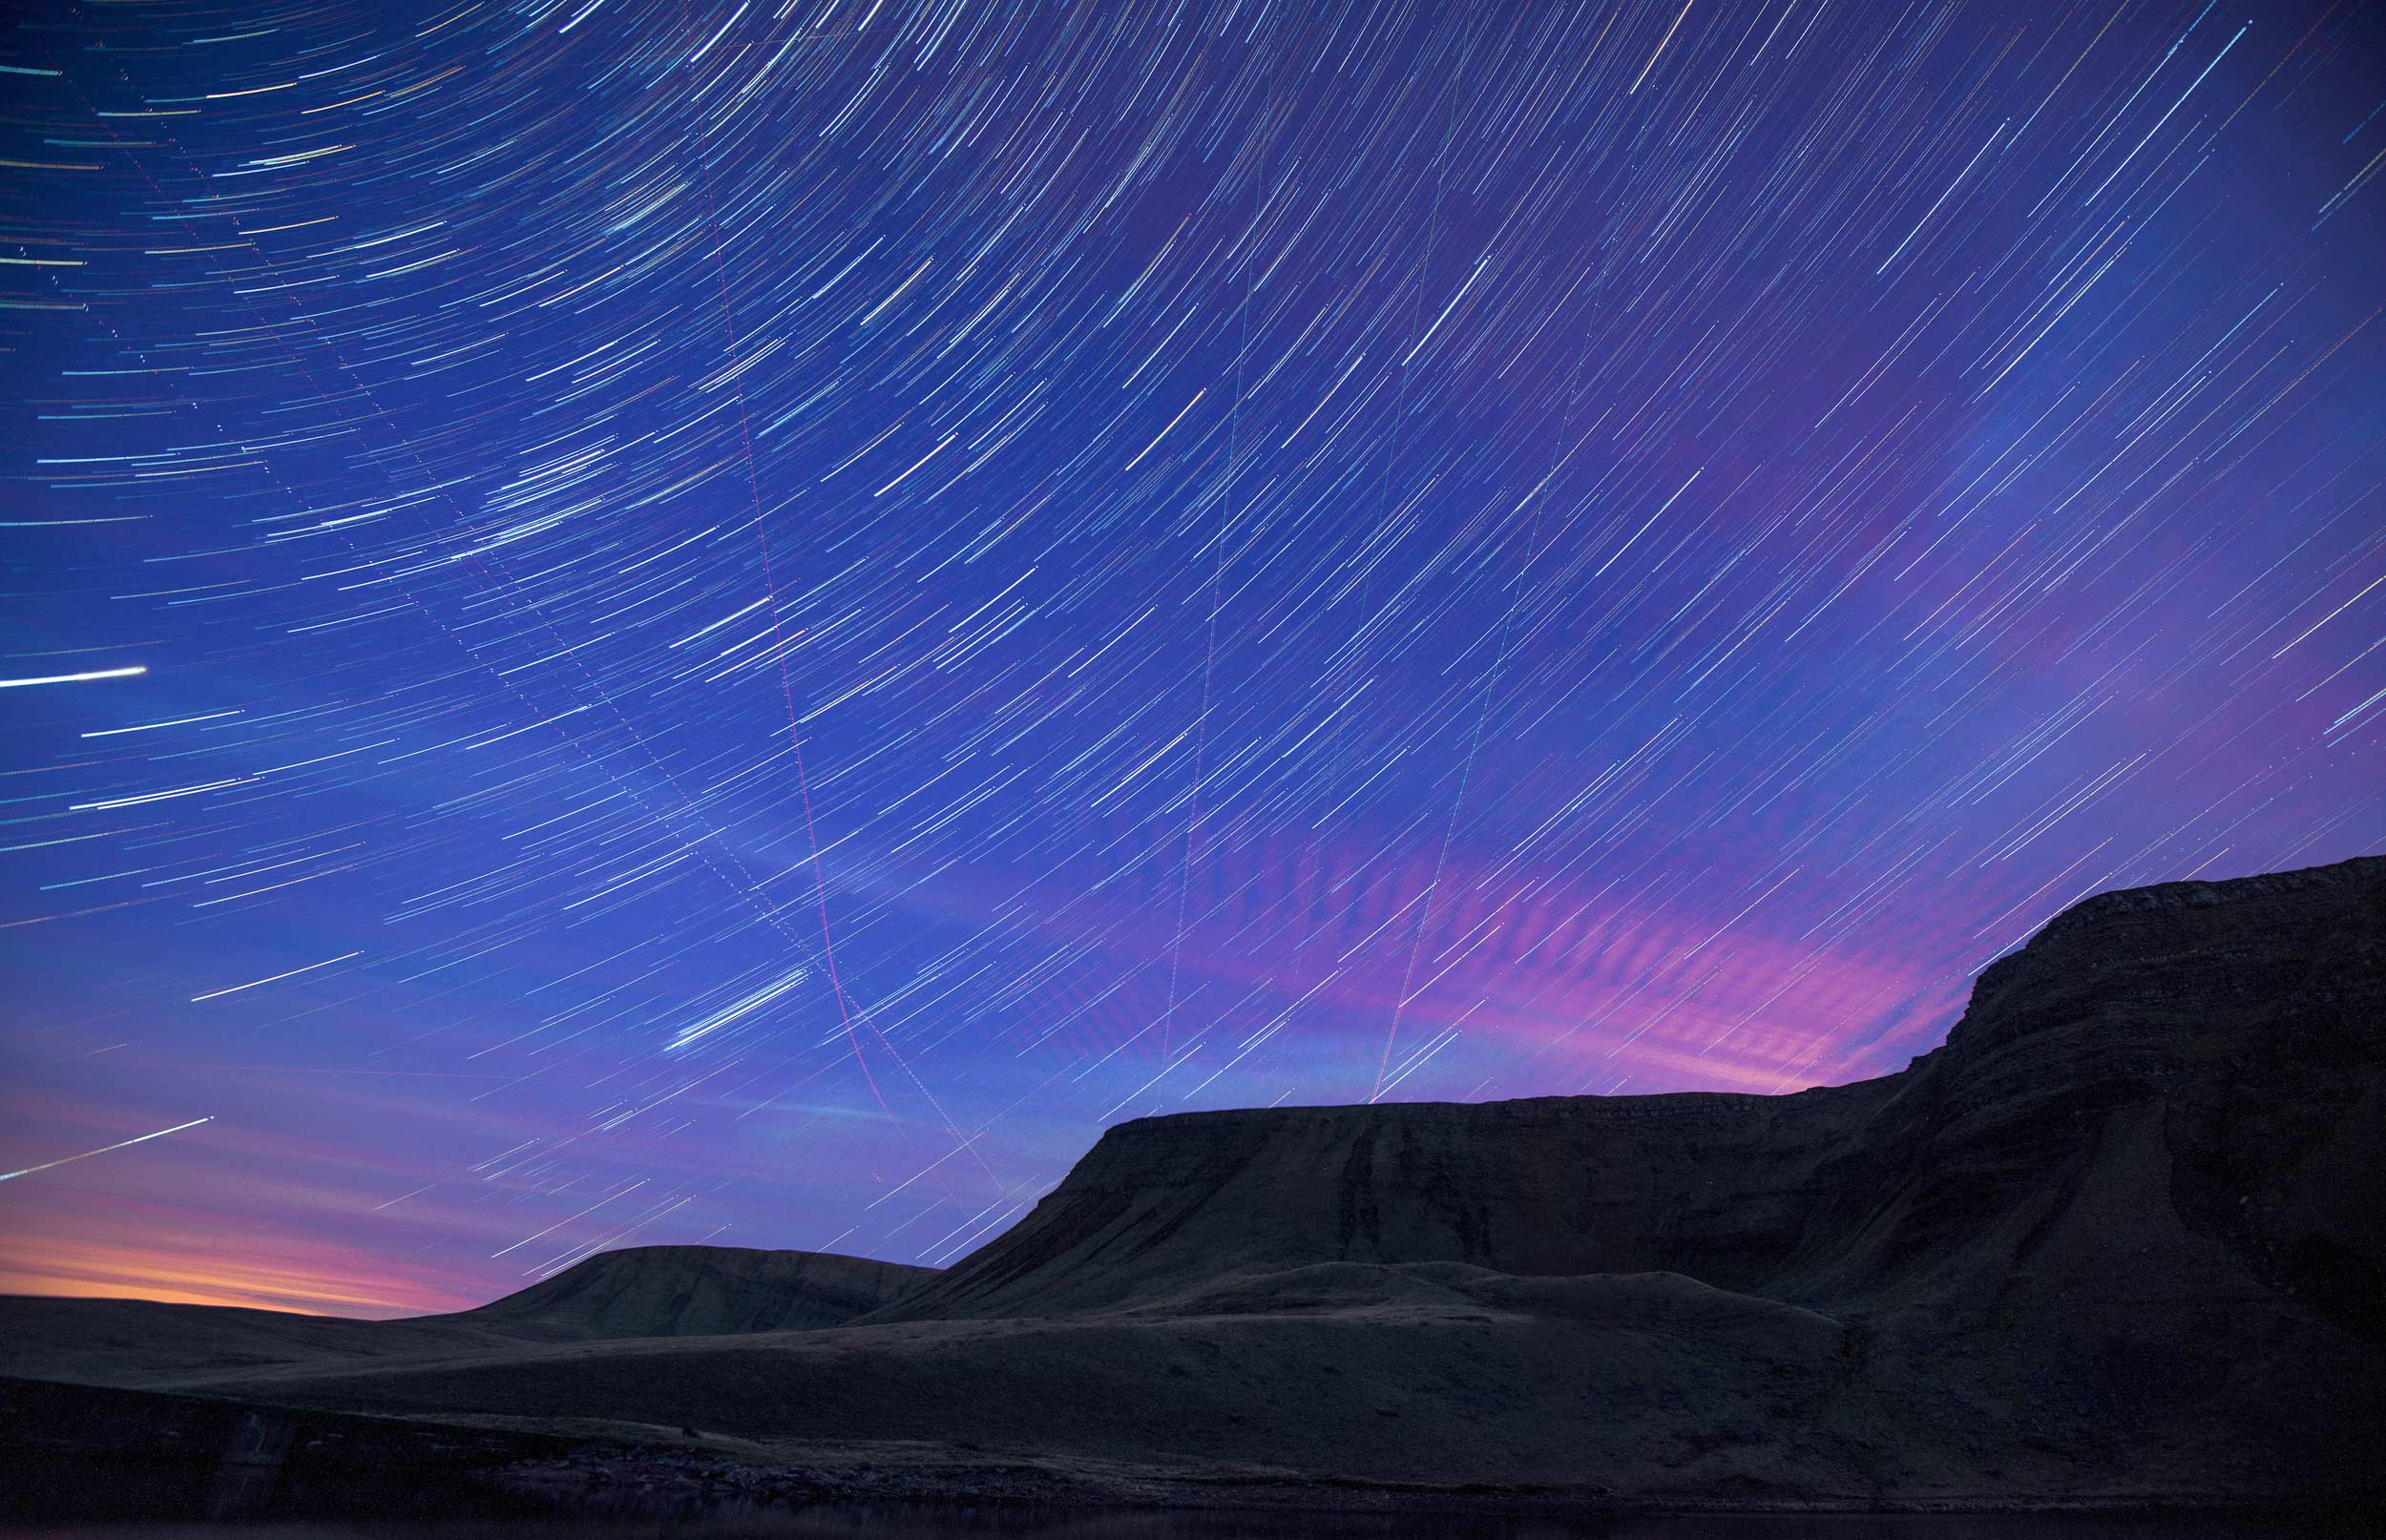 Stargazing in the Brecon Beacons, Wales  (Crown copyright 2018 / Visit Wales)